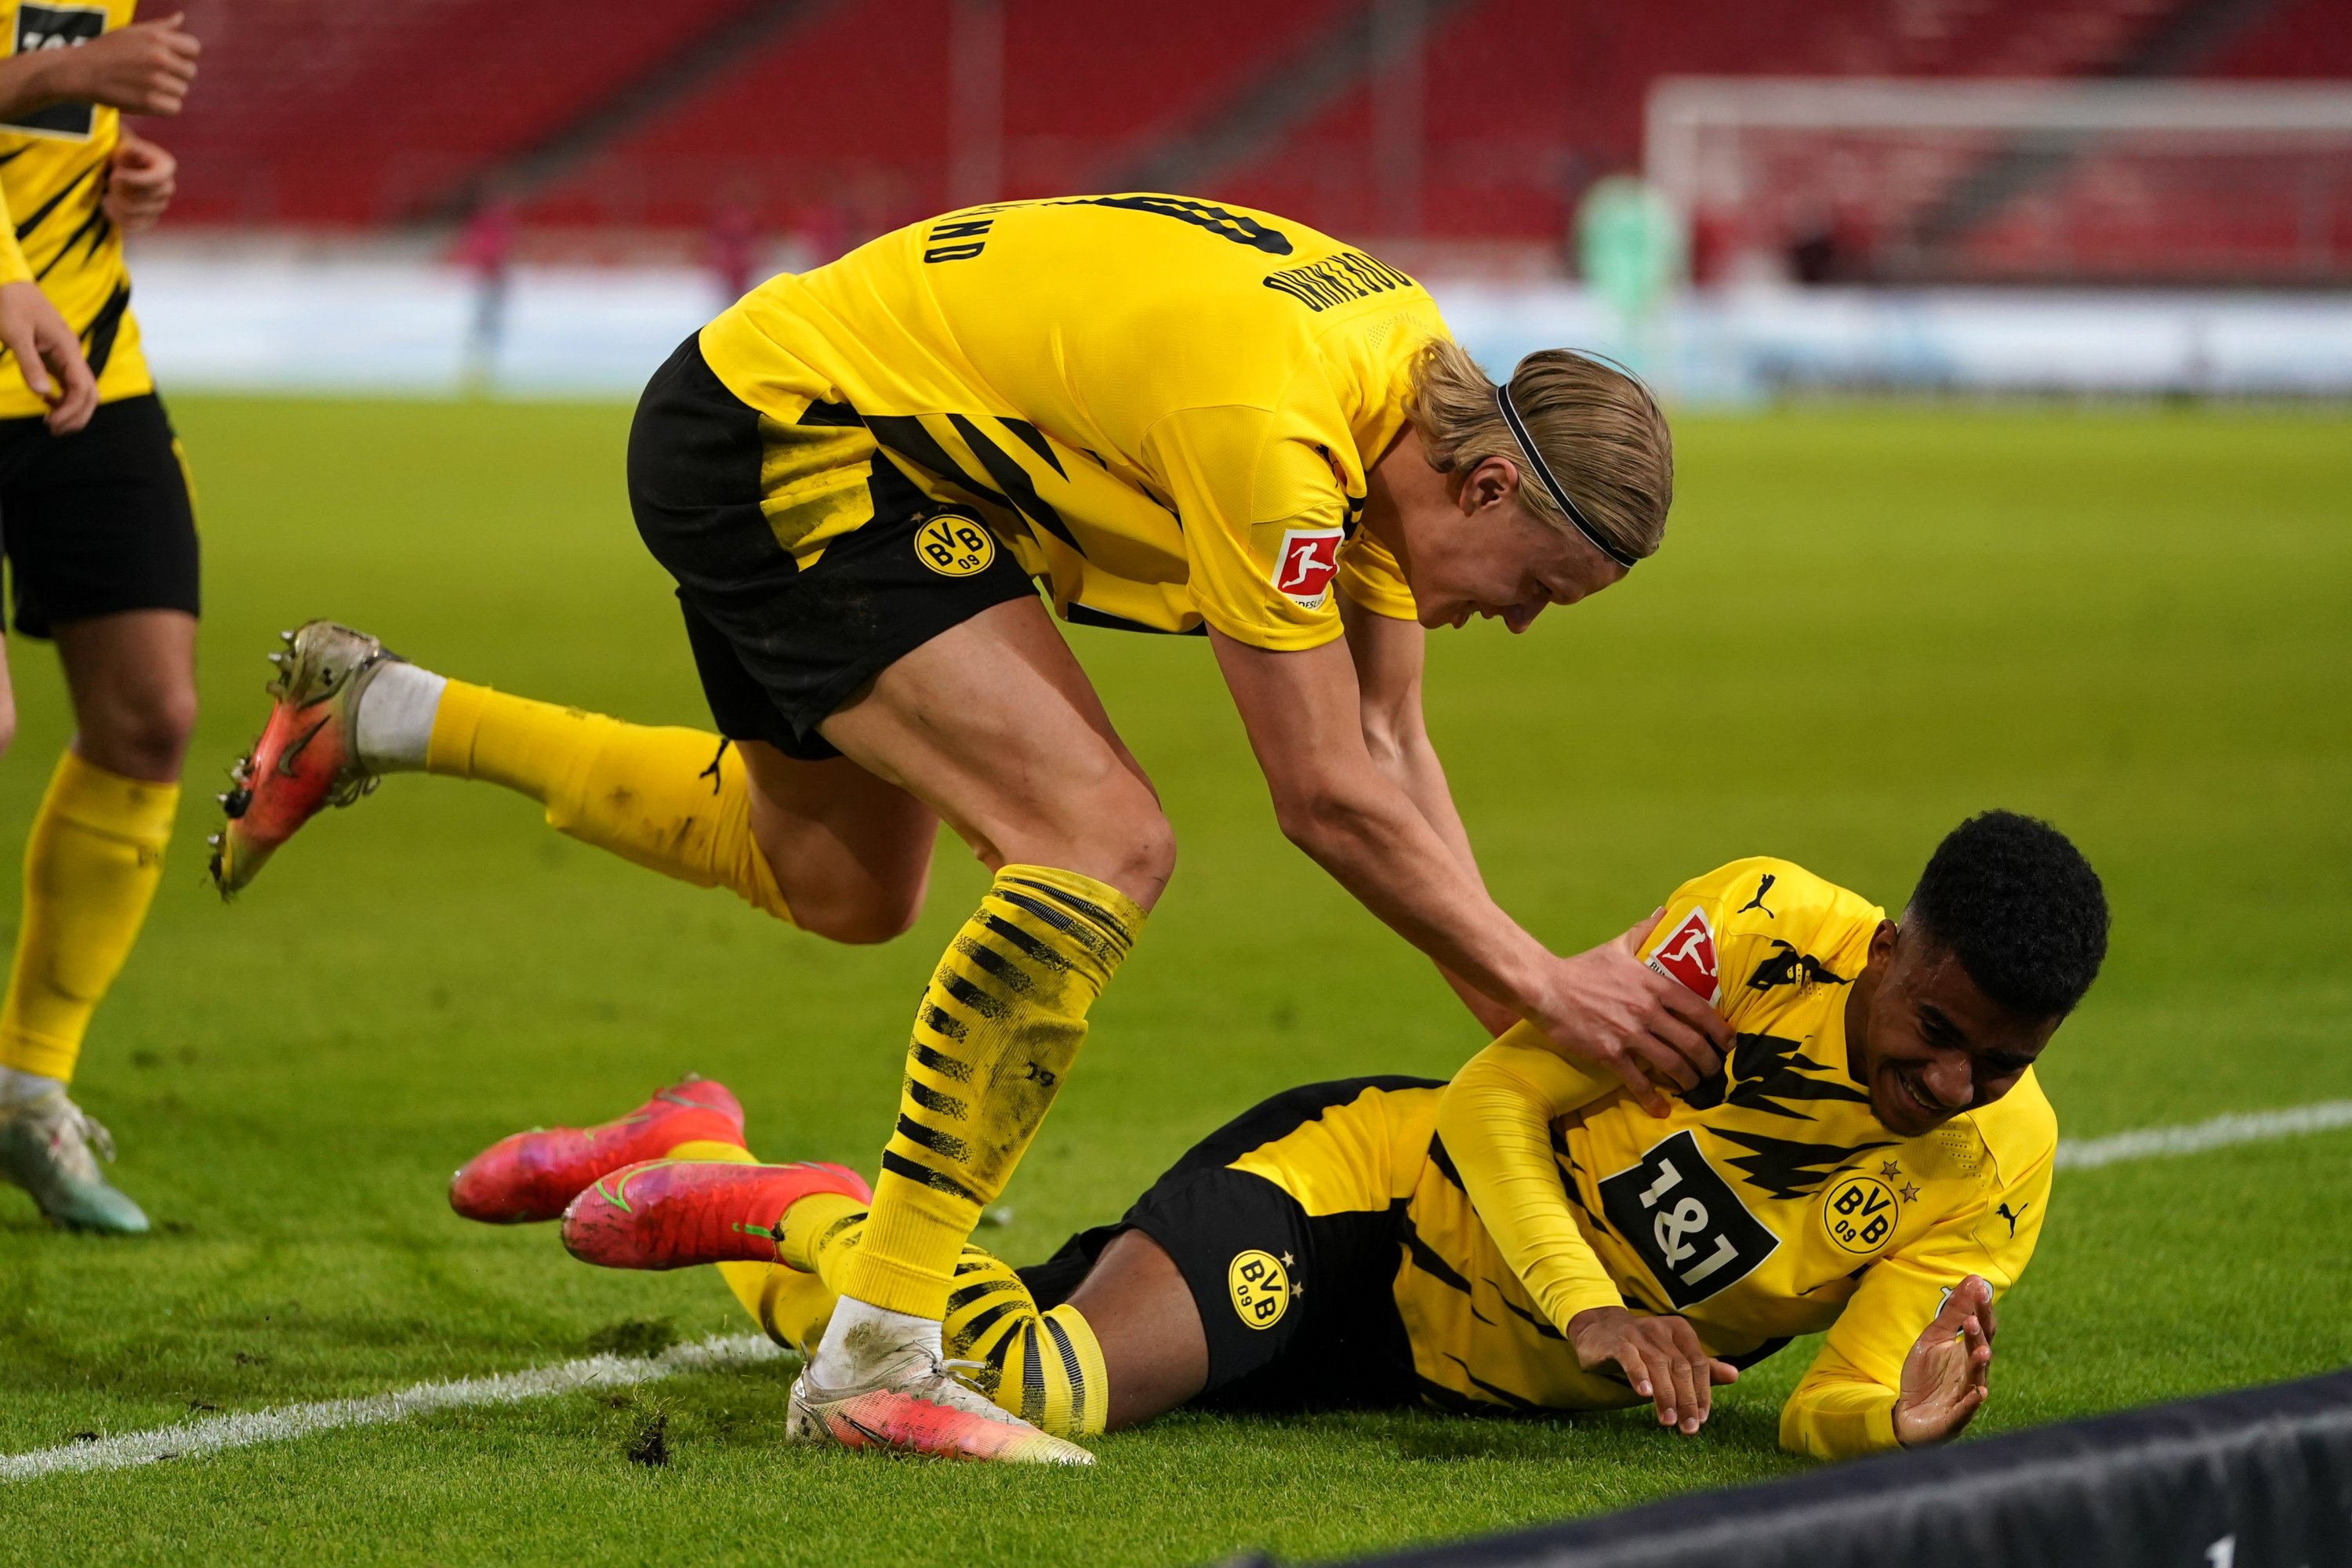 Ansgar Knauff (R) of Borussia Dortmund celebrates with Erling Haaland after scoring their team's third goal during the Bundesliga match against VfB Stuttgart at Mercedes-Benz Arena in Stuttgart, Germany, April 10, 2021.  (Christian Kaspar-Bartke/DFL/Pool via EPA)